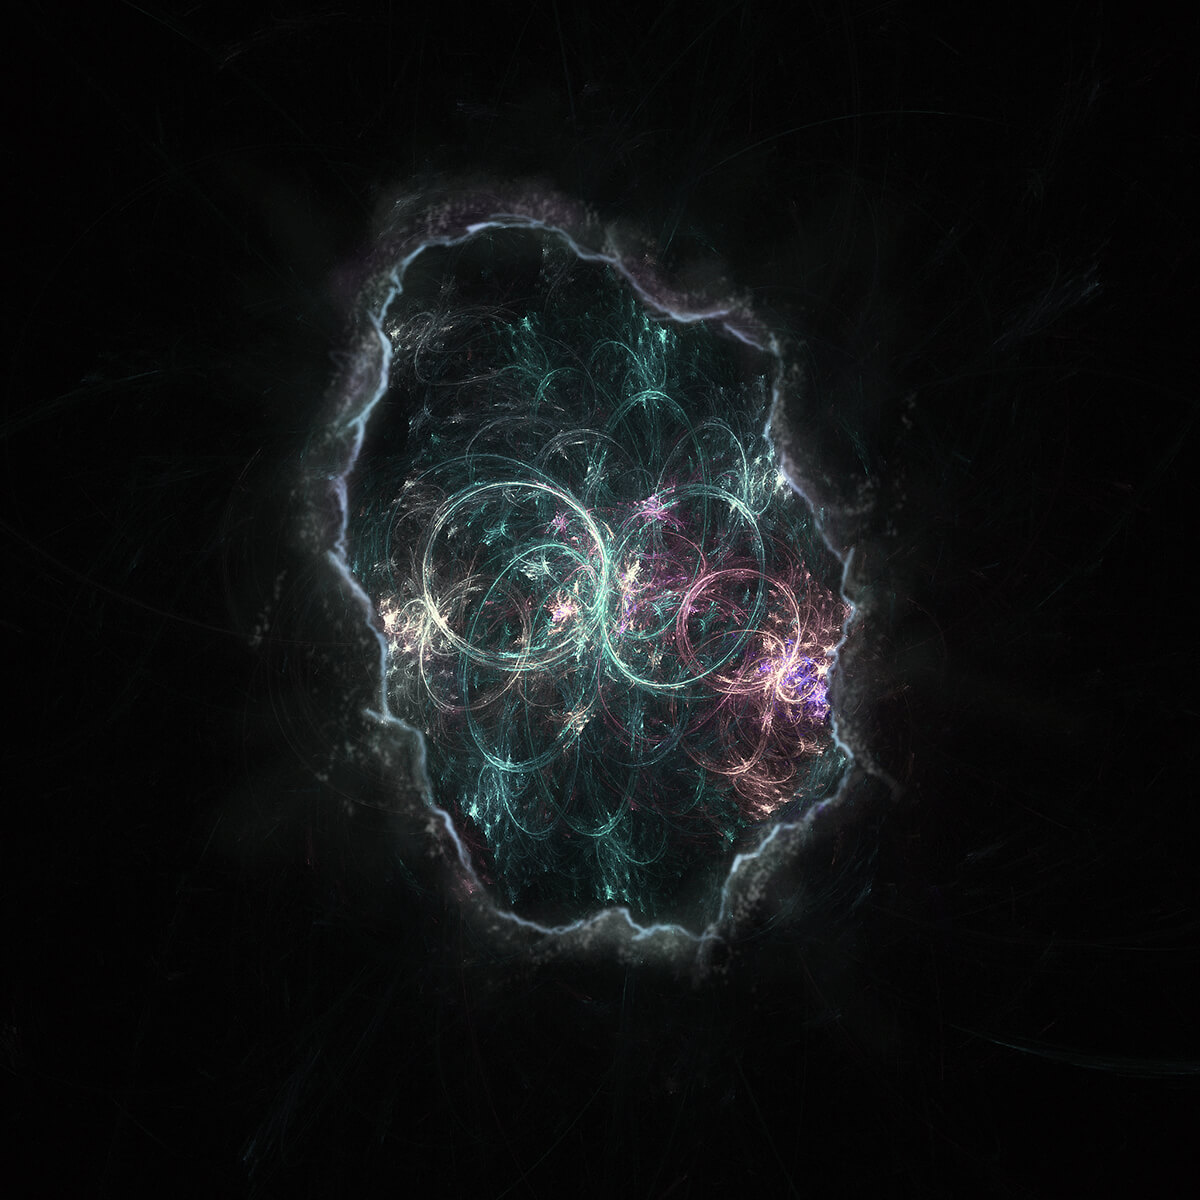 3D render of fractal space seen from a cave